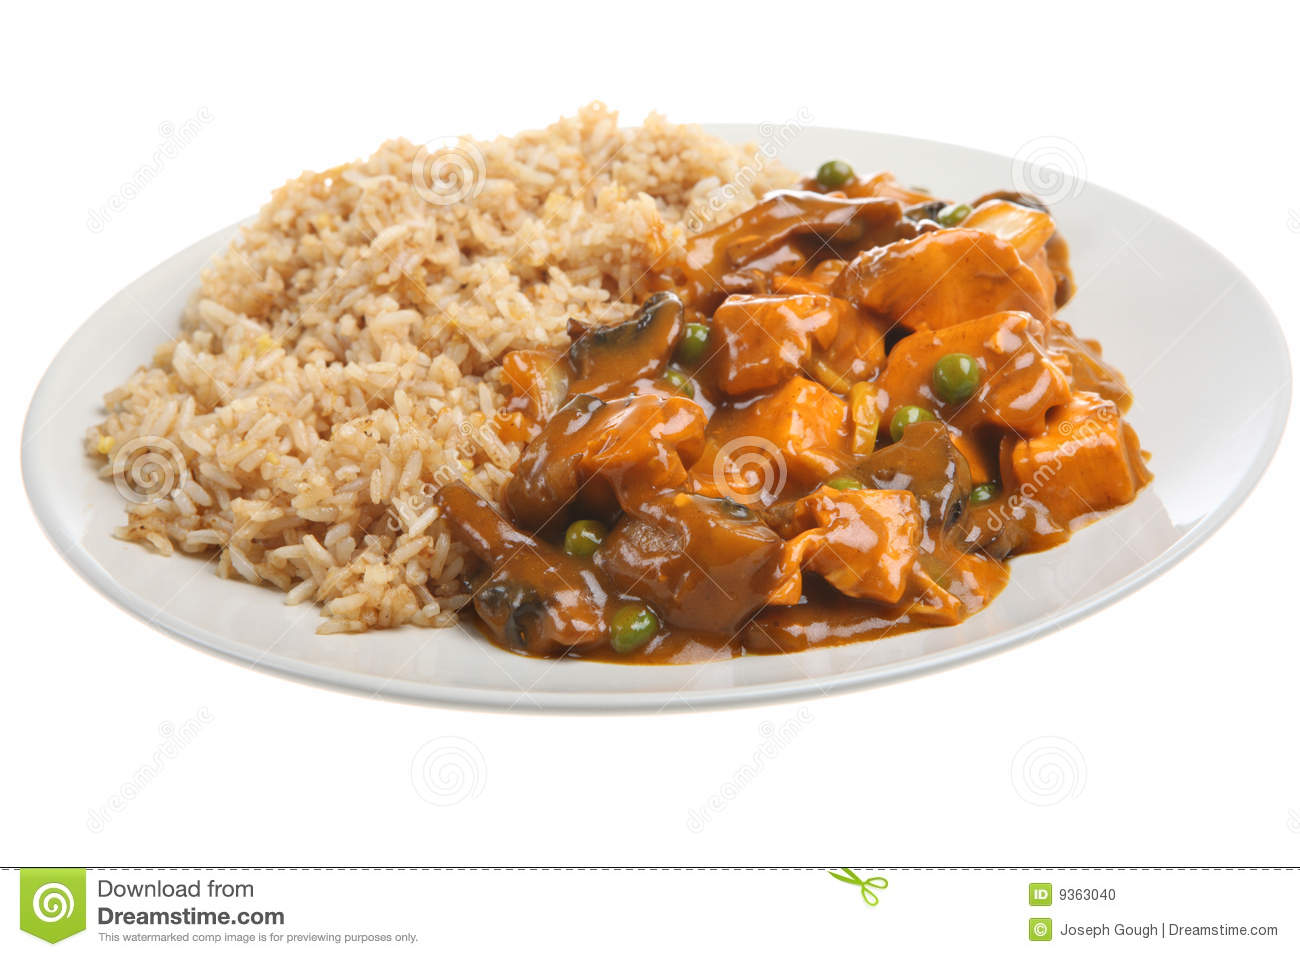 Chinese Curry & Rice Takeaway Meal Royalty Free Stock Photo.